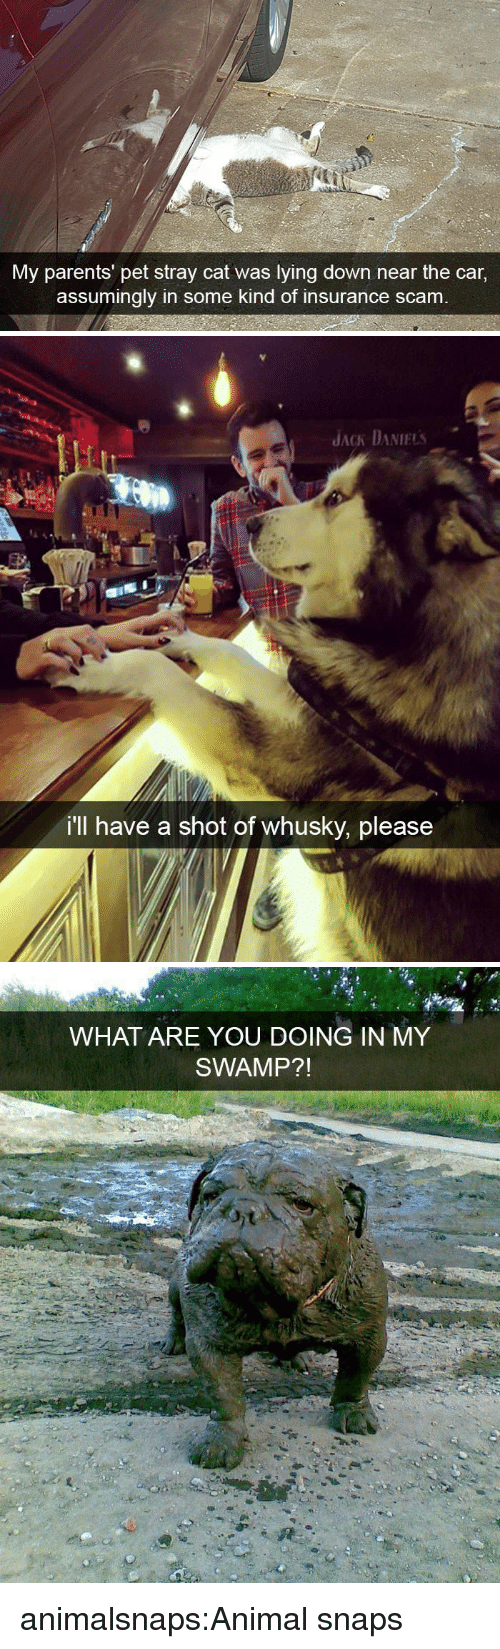 Lying Down: My parents' pet stray cat was lying down near the car,  assumingly in some kind of insurance scam   JACK DANIELs  i'll have a shot of whusky, please   WHAT ARE YOU DOING IN MY  SWAMP?! animalsnaps:Animal snaps